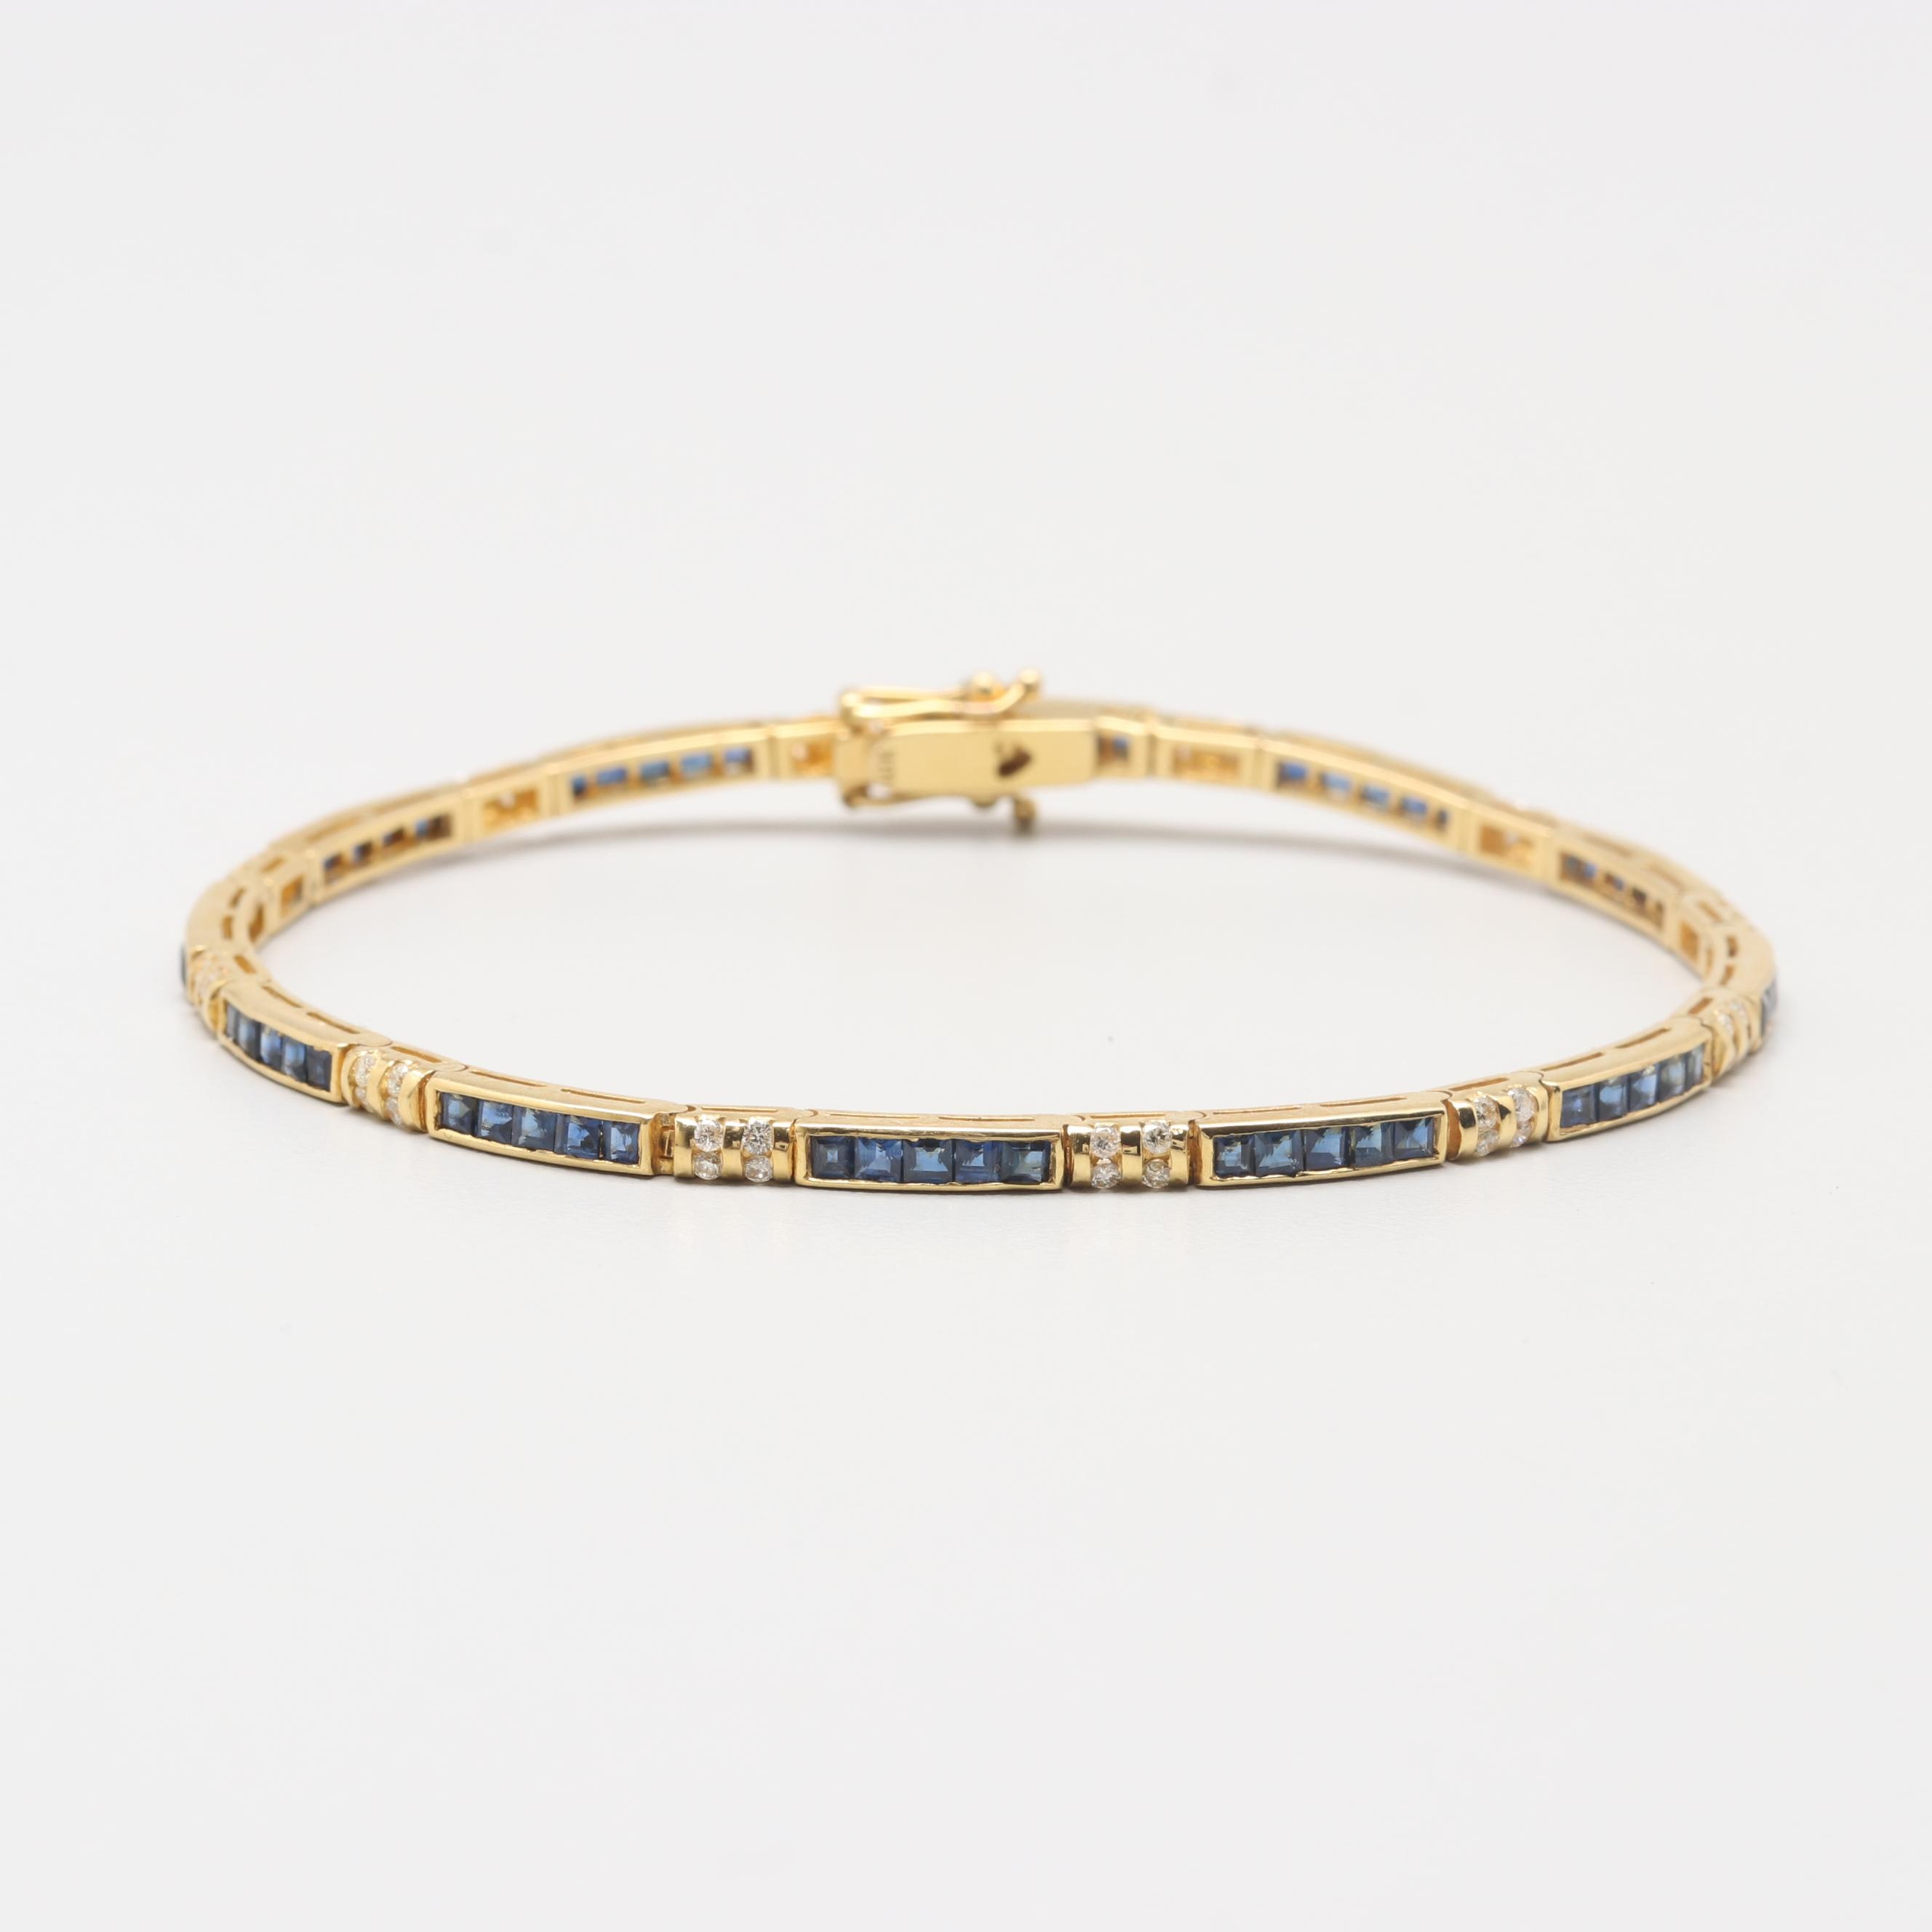 18K Yellow Gold Sapphire and Diamond Bracelet